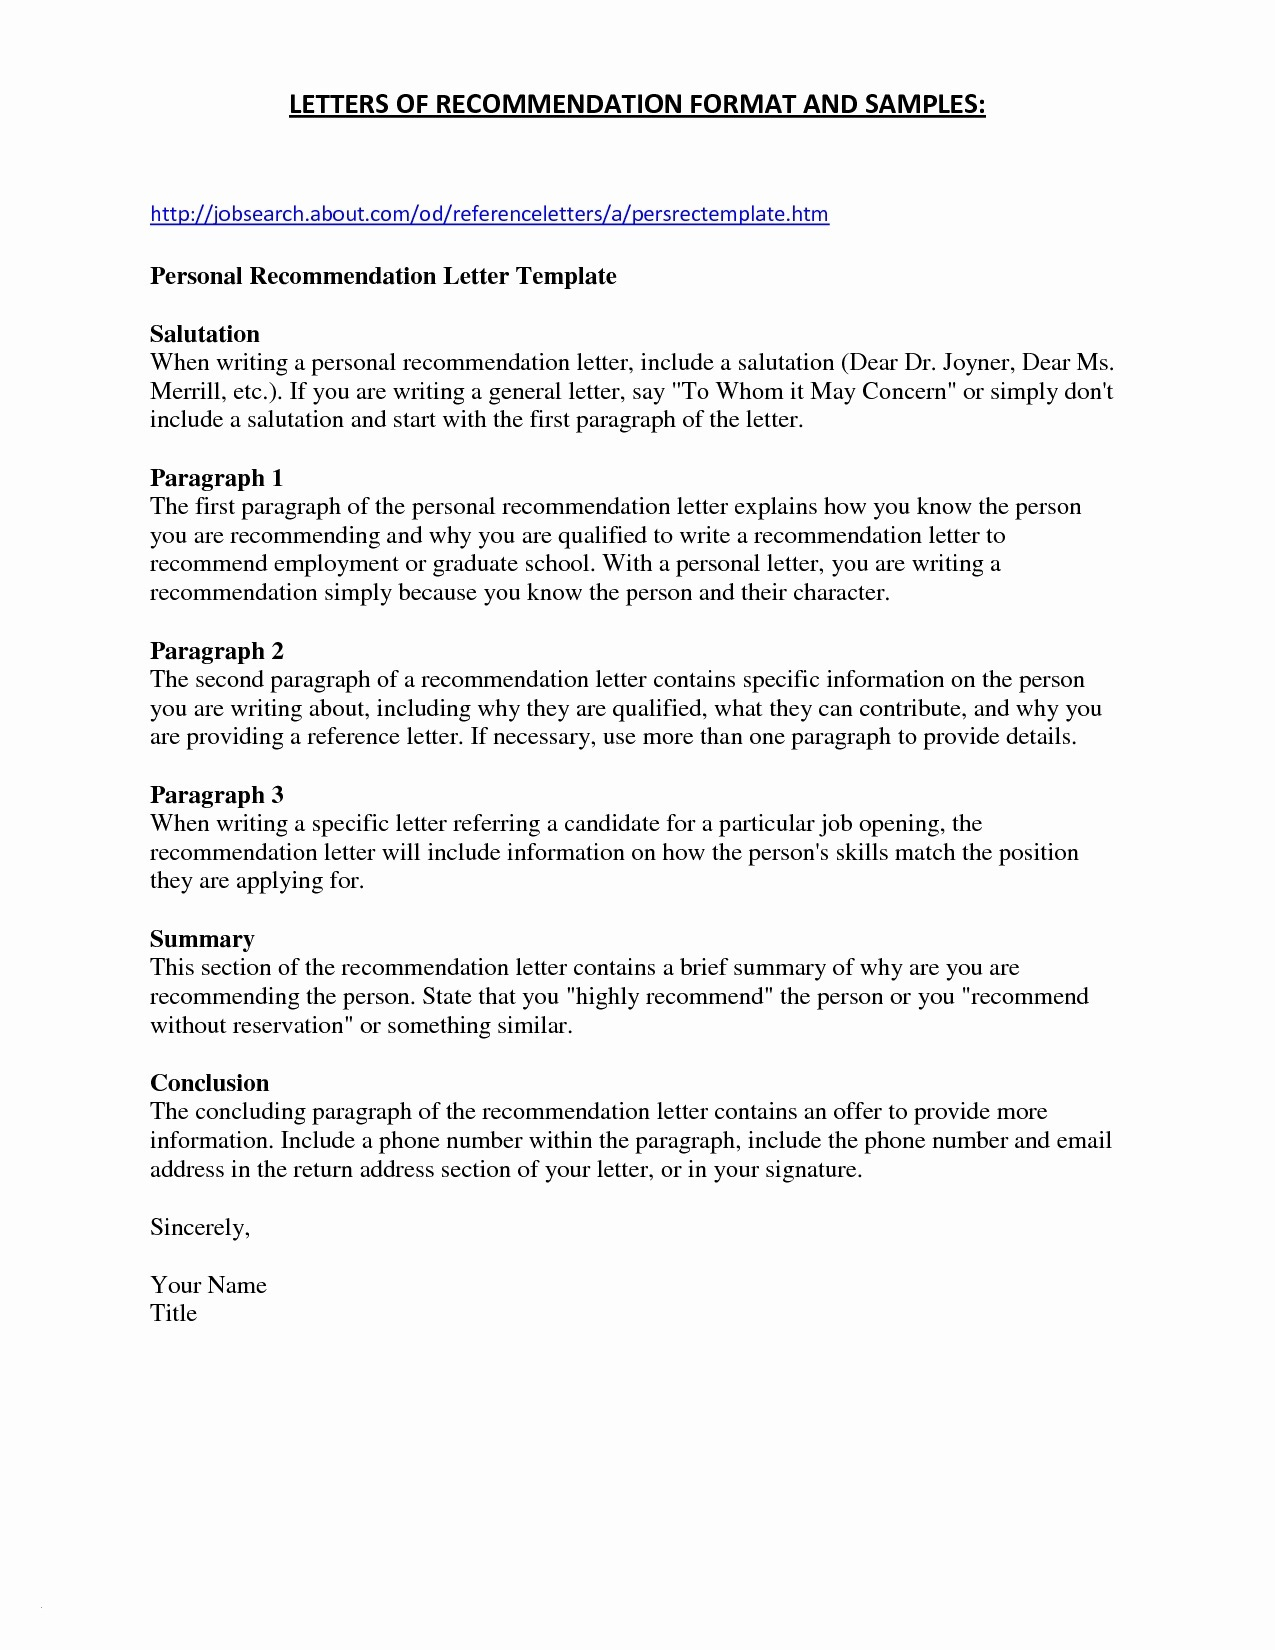 Resume Wizard Word - Creating A Resume Template In Word Inspirational Resume formats